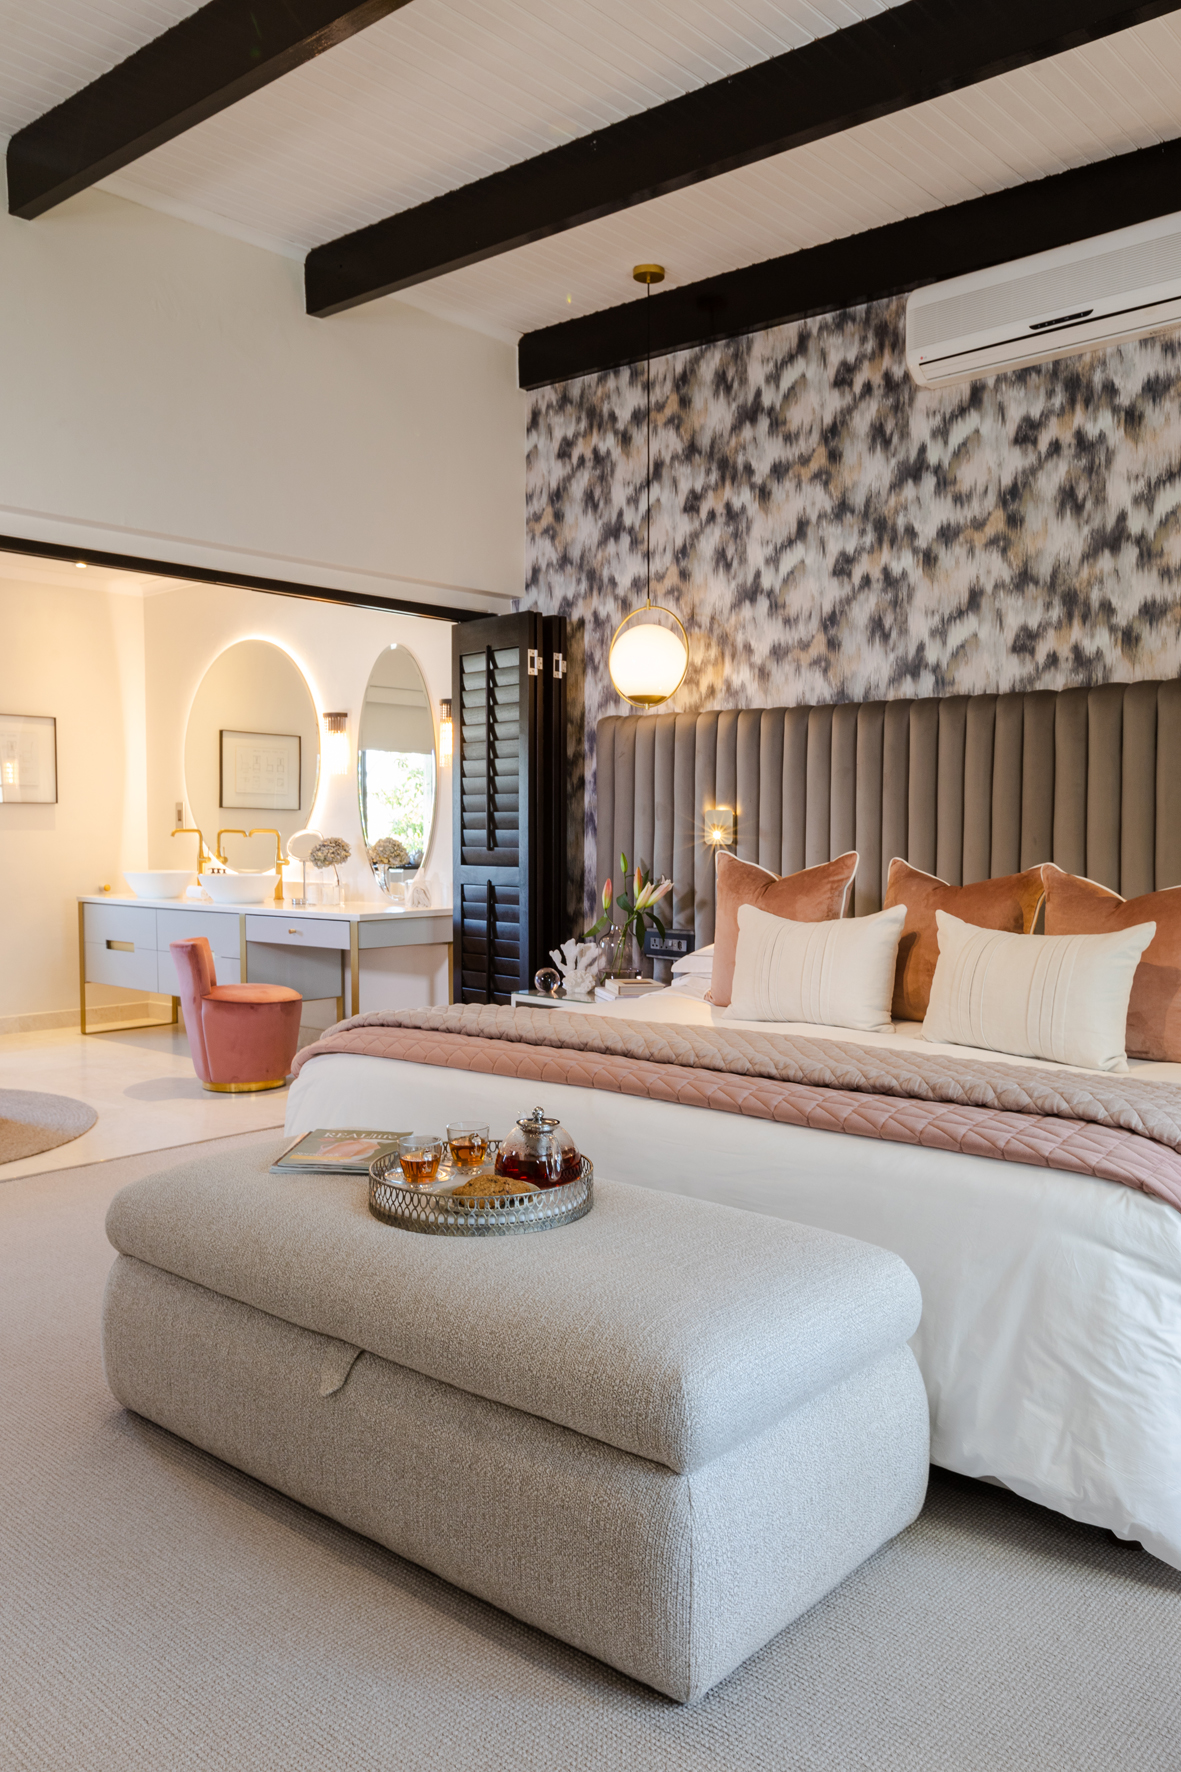 Bliss awaits you at Steenberg for Valentine's Sonia Cabano blog eatdrinkcapetown